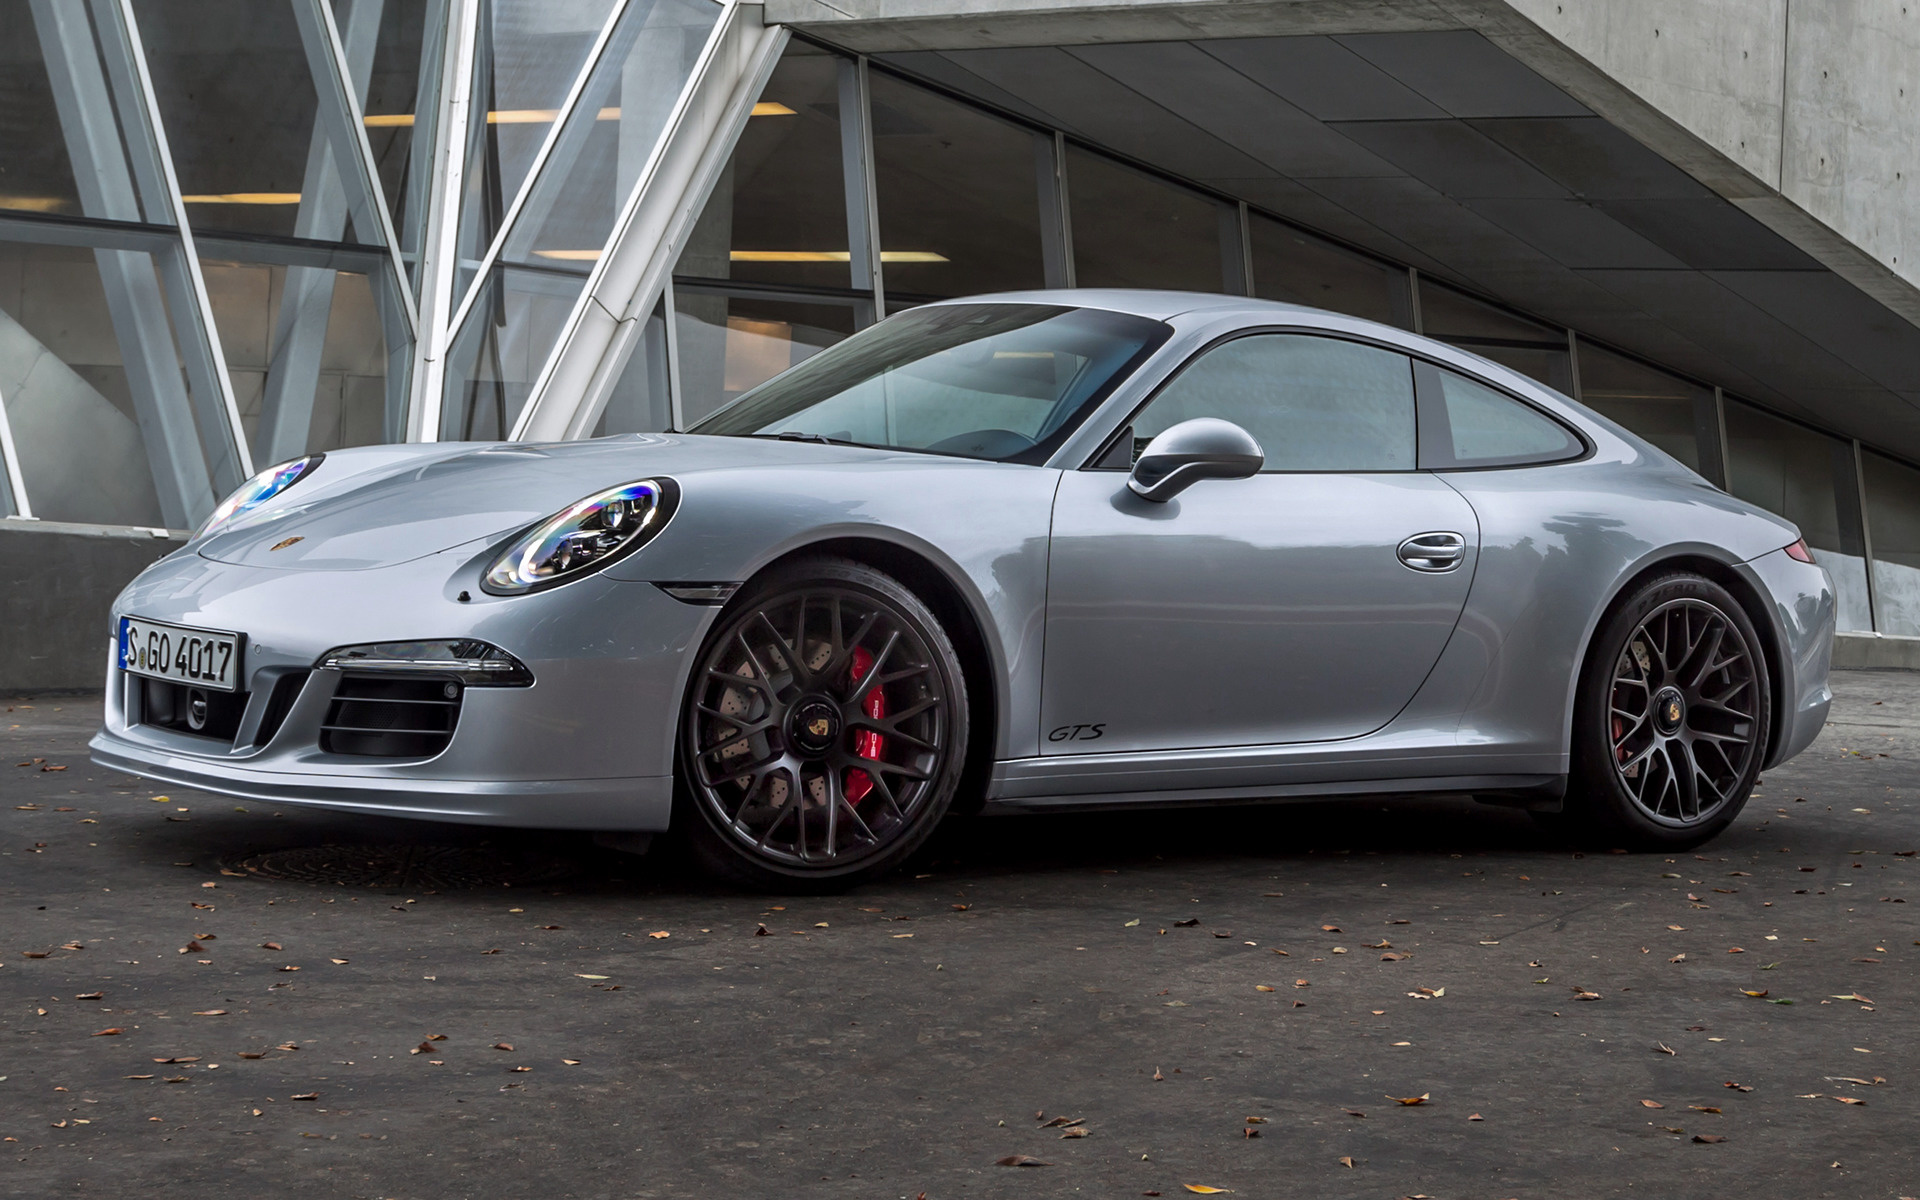 2014 porsche 911 carrera gts wallpapers and hd images - Porsche 911 carrera s wallpaper ...